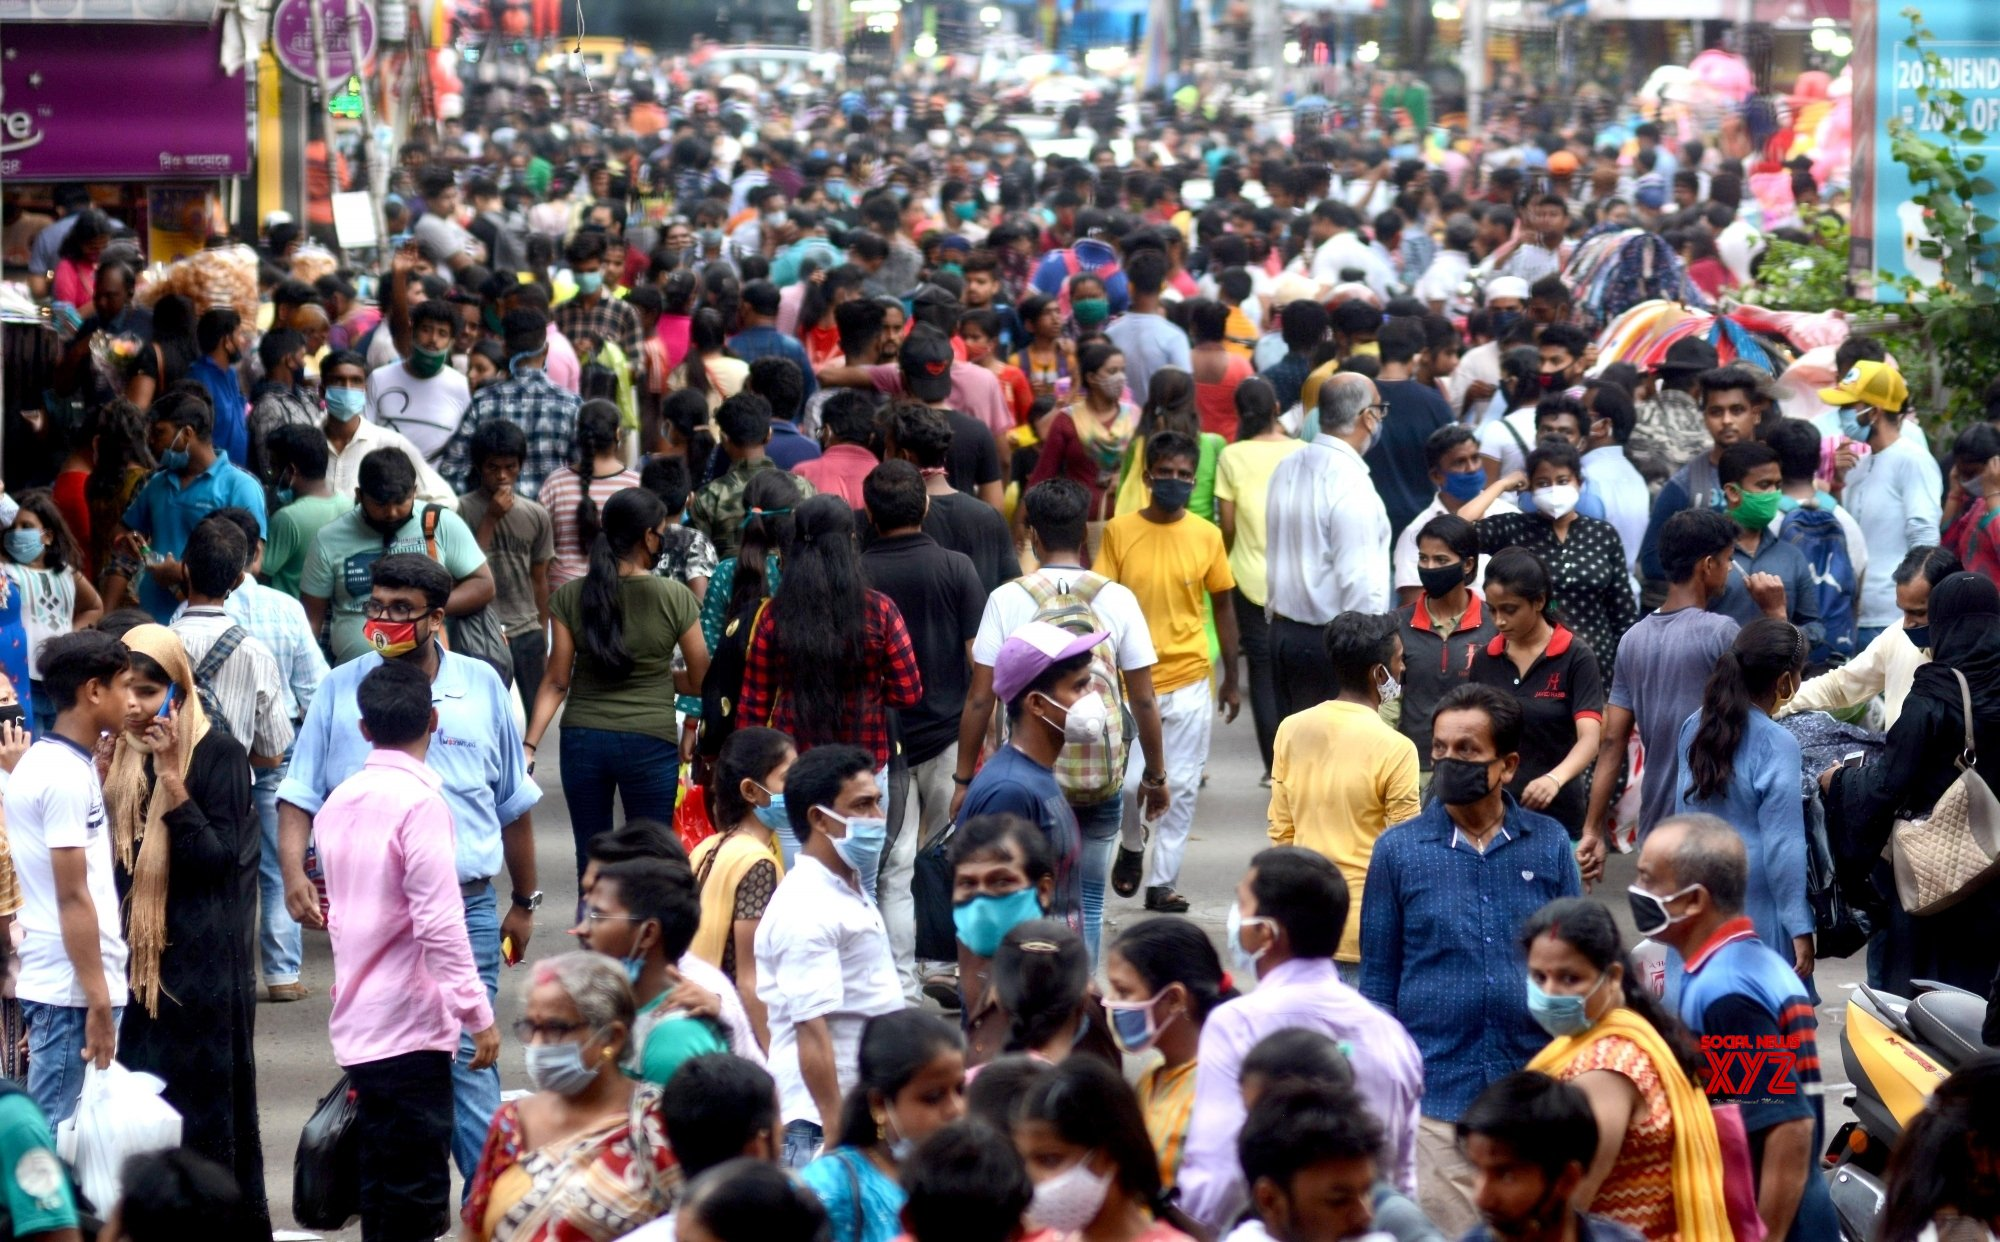 Kolkata: People shopping at New market area on eve of Durga Puja festival #Gallery